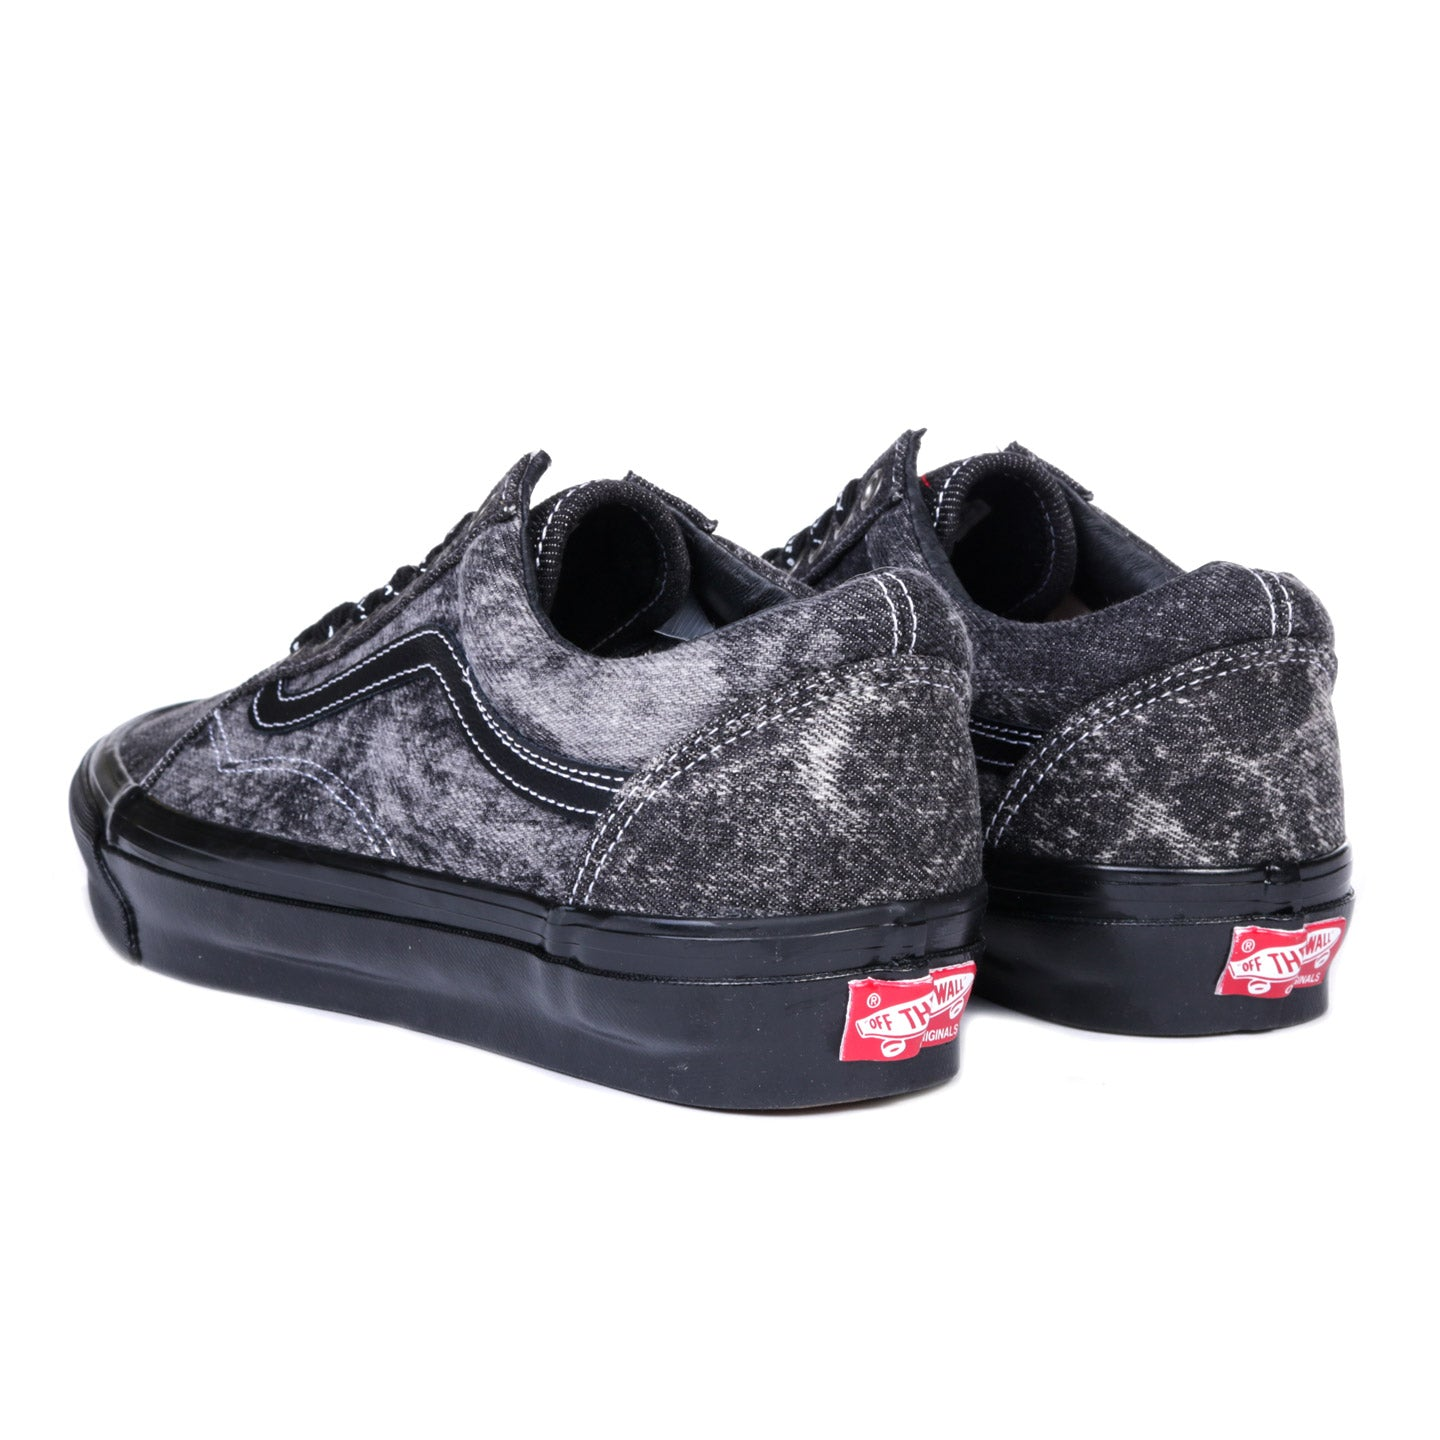 VAULT BY VANS JIM GOLDBERG OG OLD SKOOL LX ACID WASH DENIM